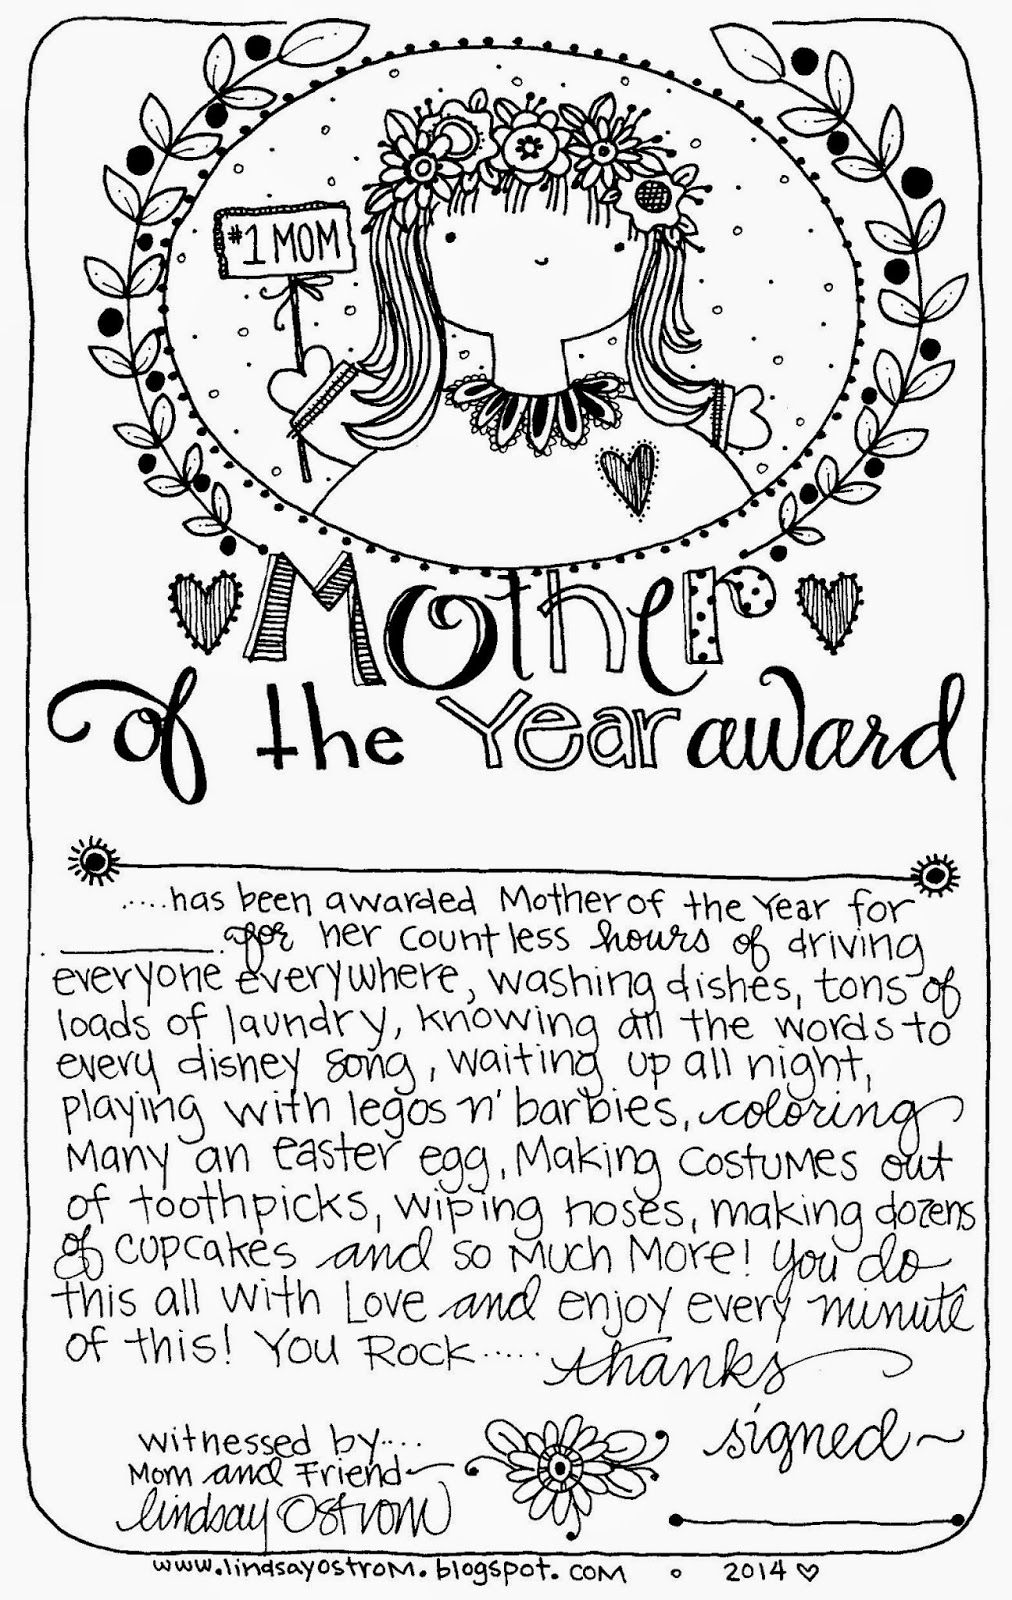 free printable mother of the year award use for a mother 39 s day certificate or anytime to make. Black Bedroom Furniture Sets. Home Design Ideas